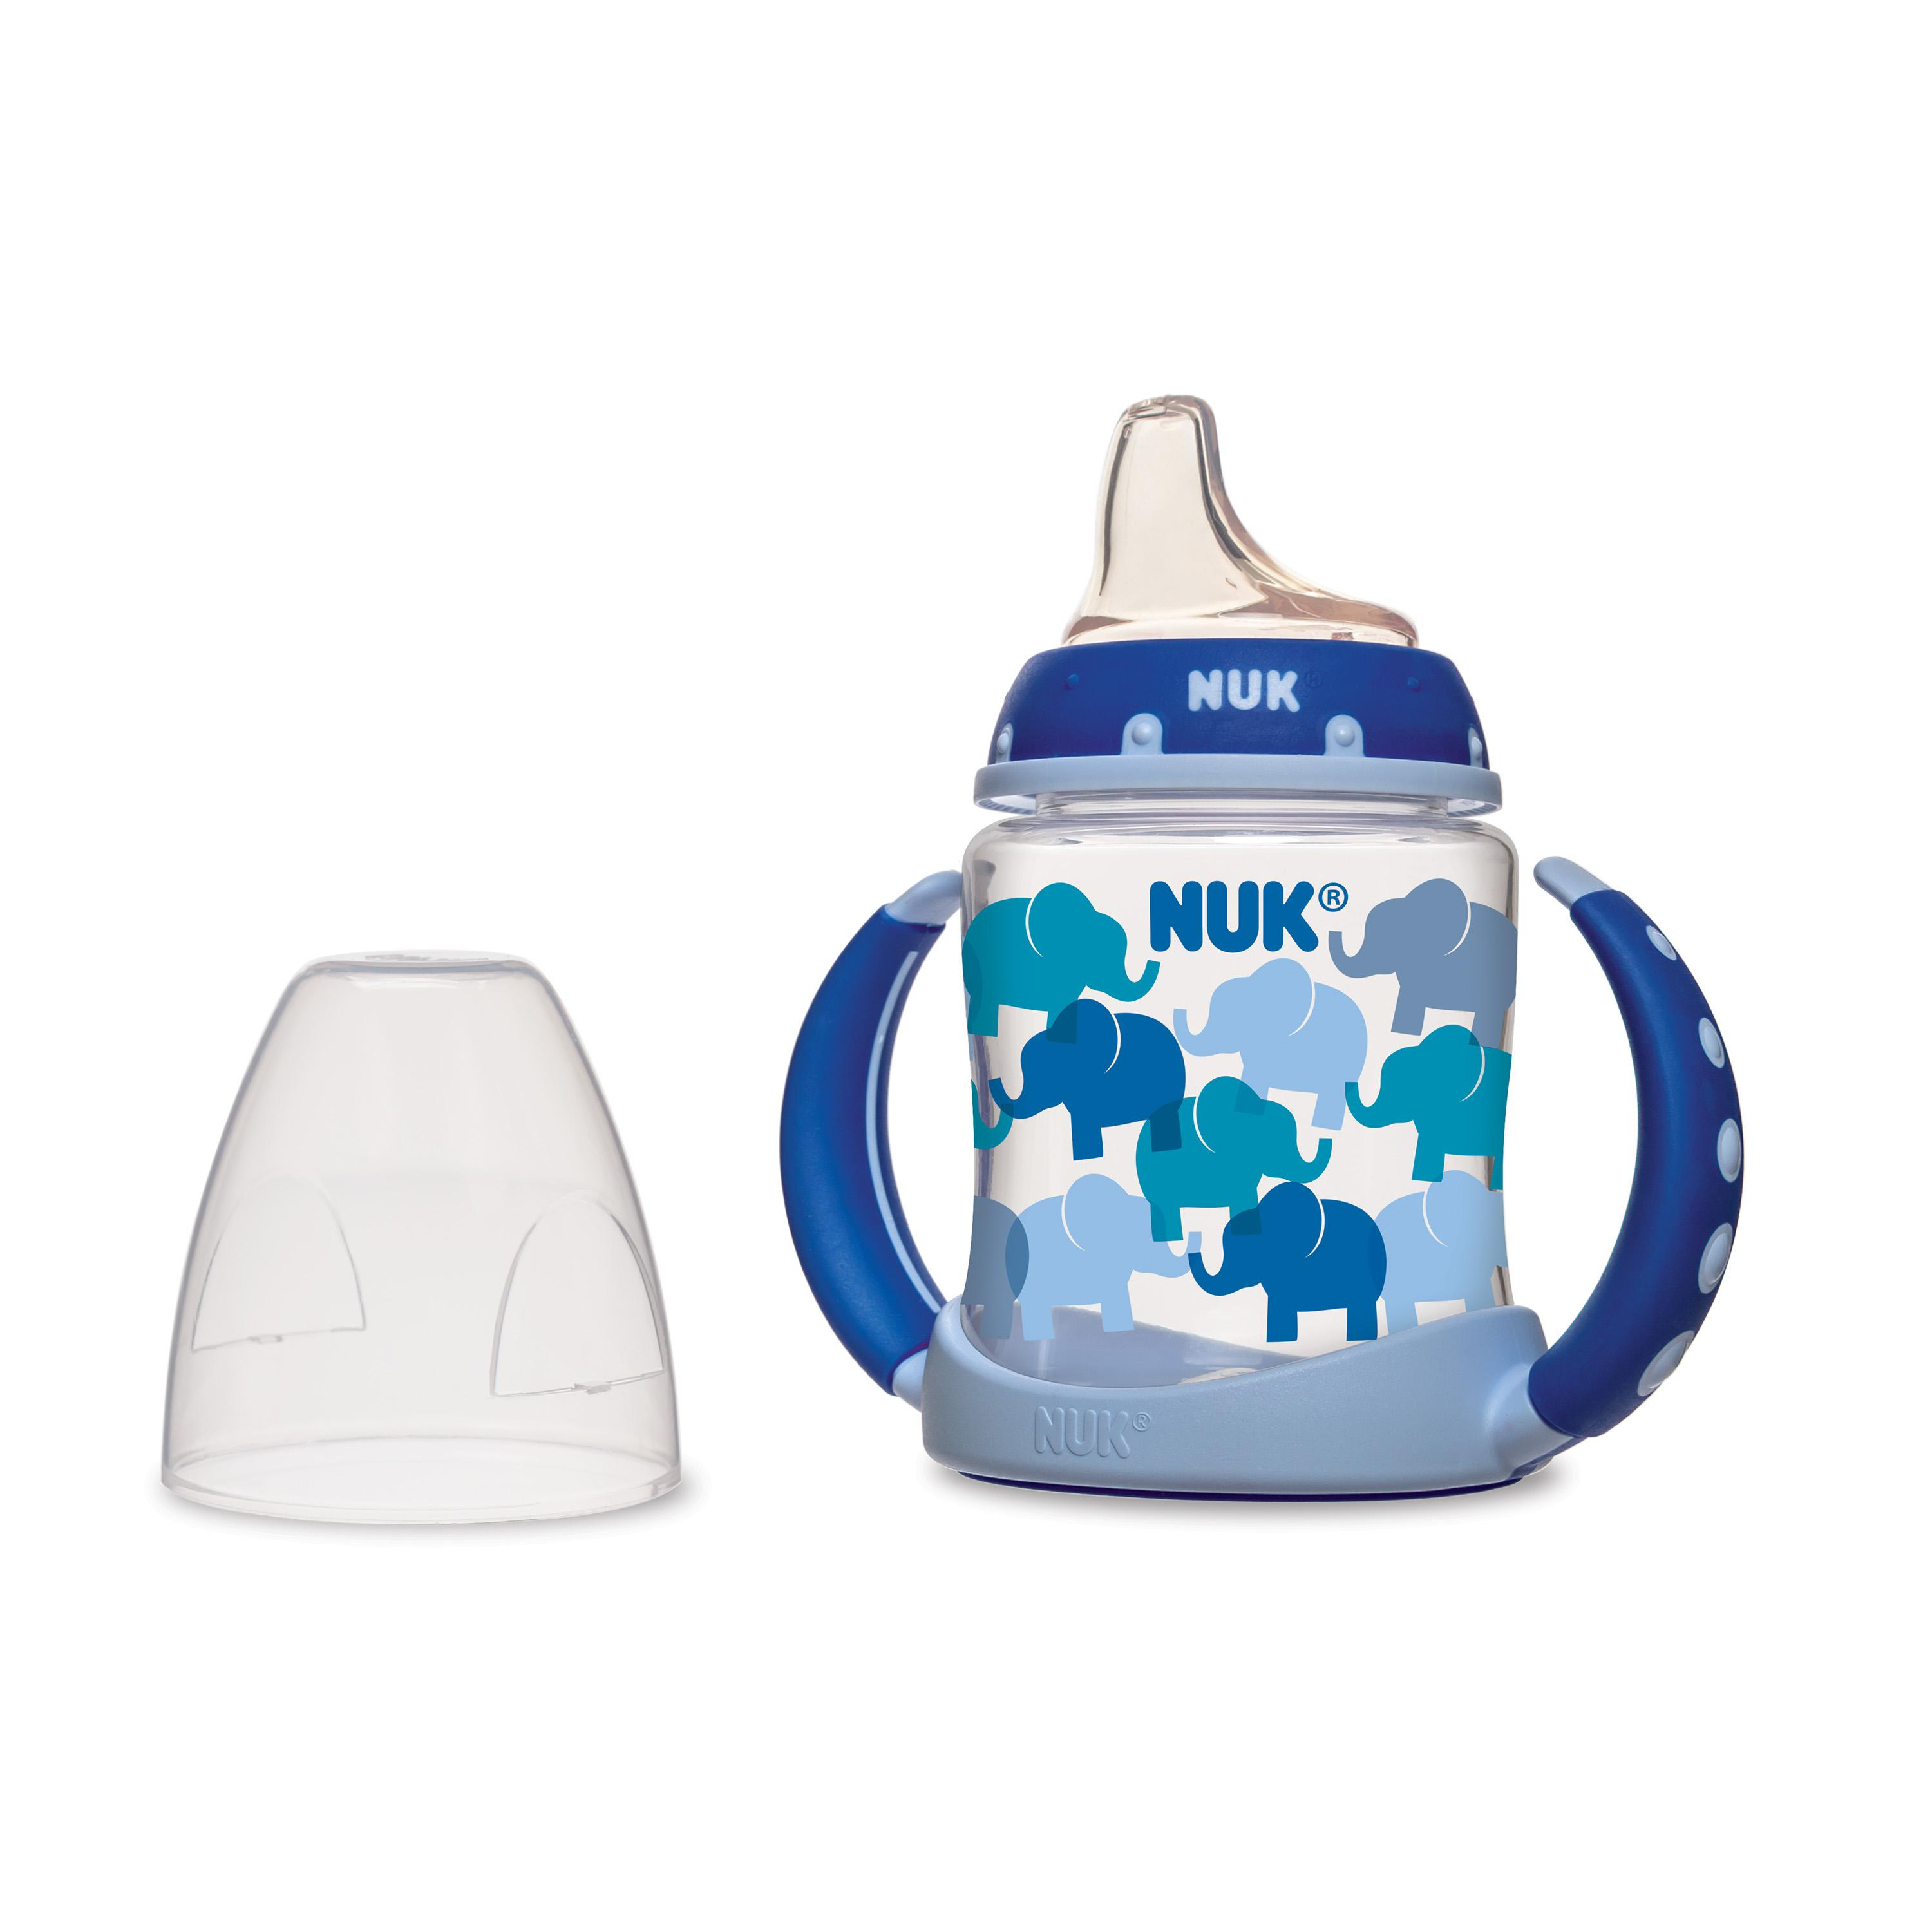 NUK Elephants Learner Cup 6+m - 1 CT